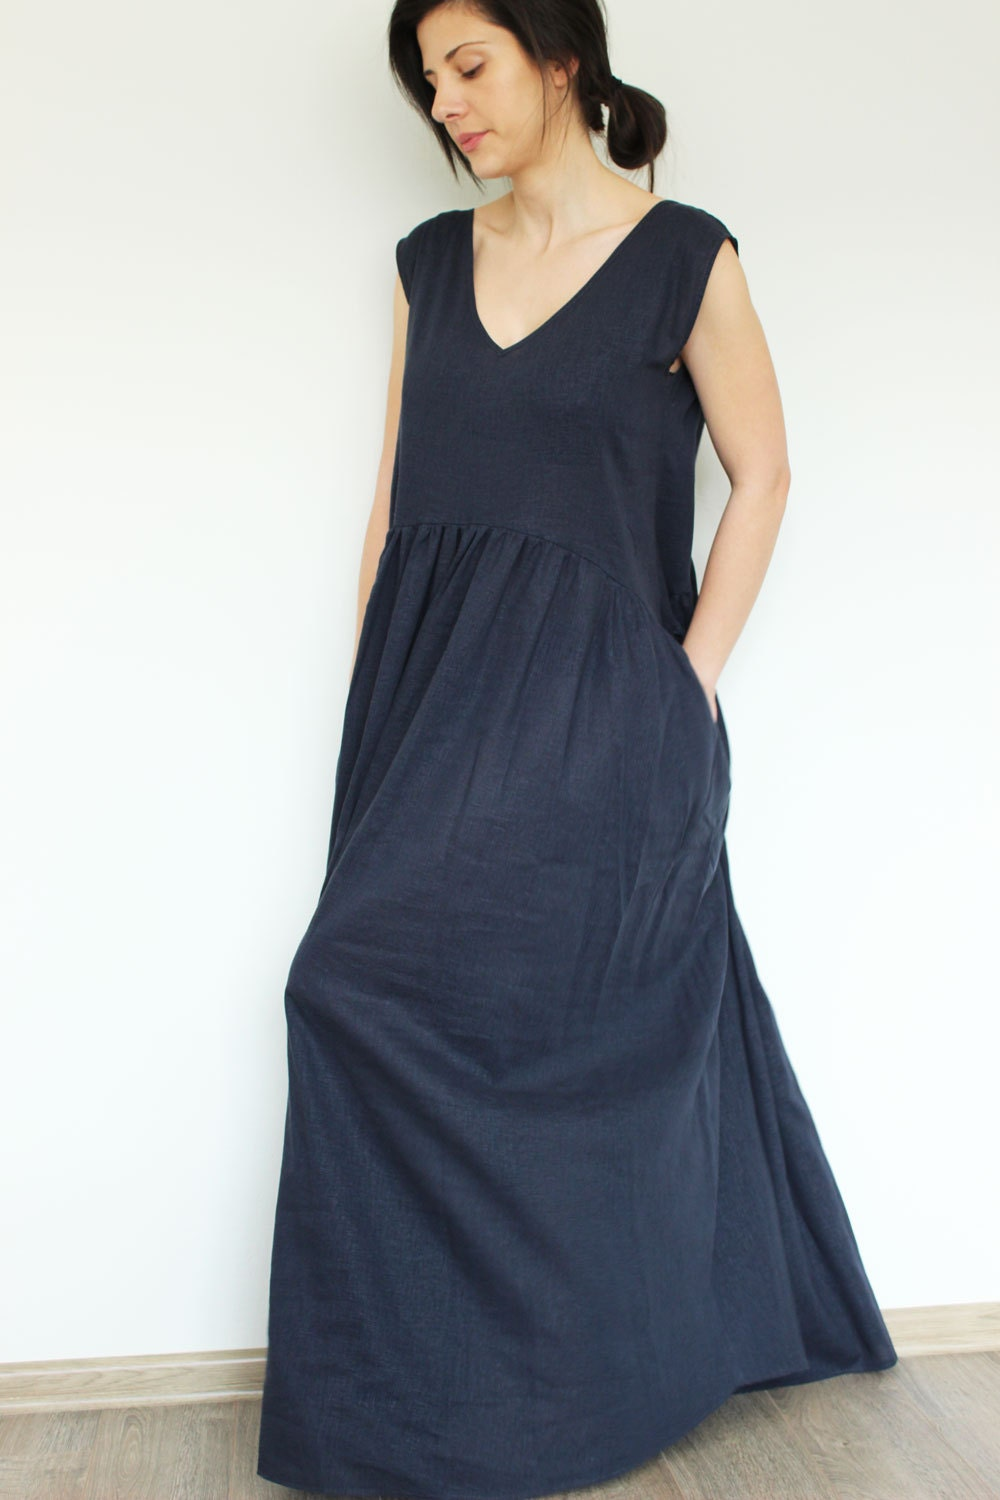 Linen Dress Blue Linen Dress Summer Linen Dress By